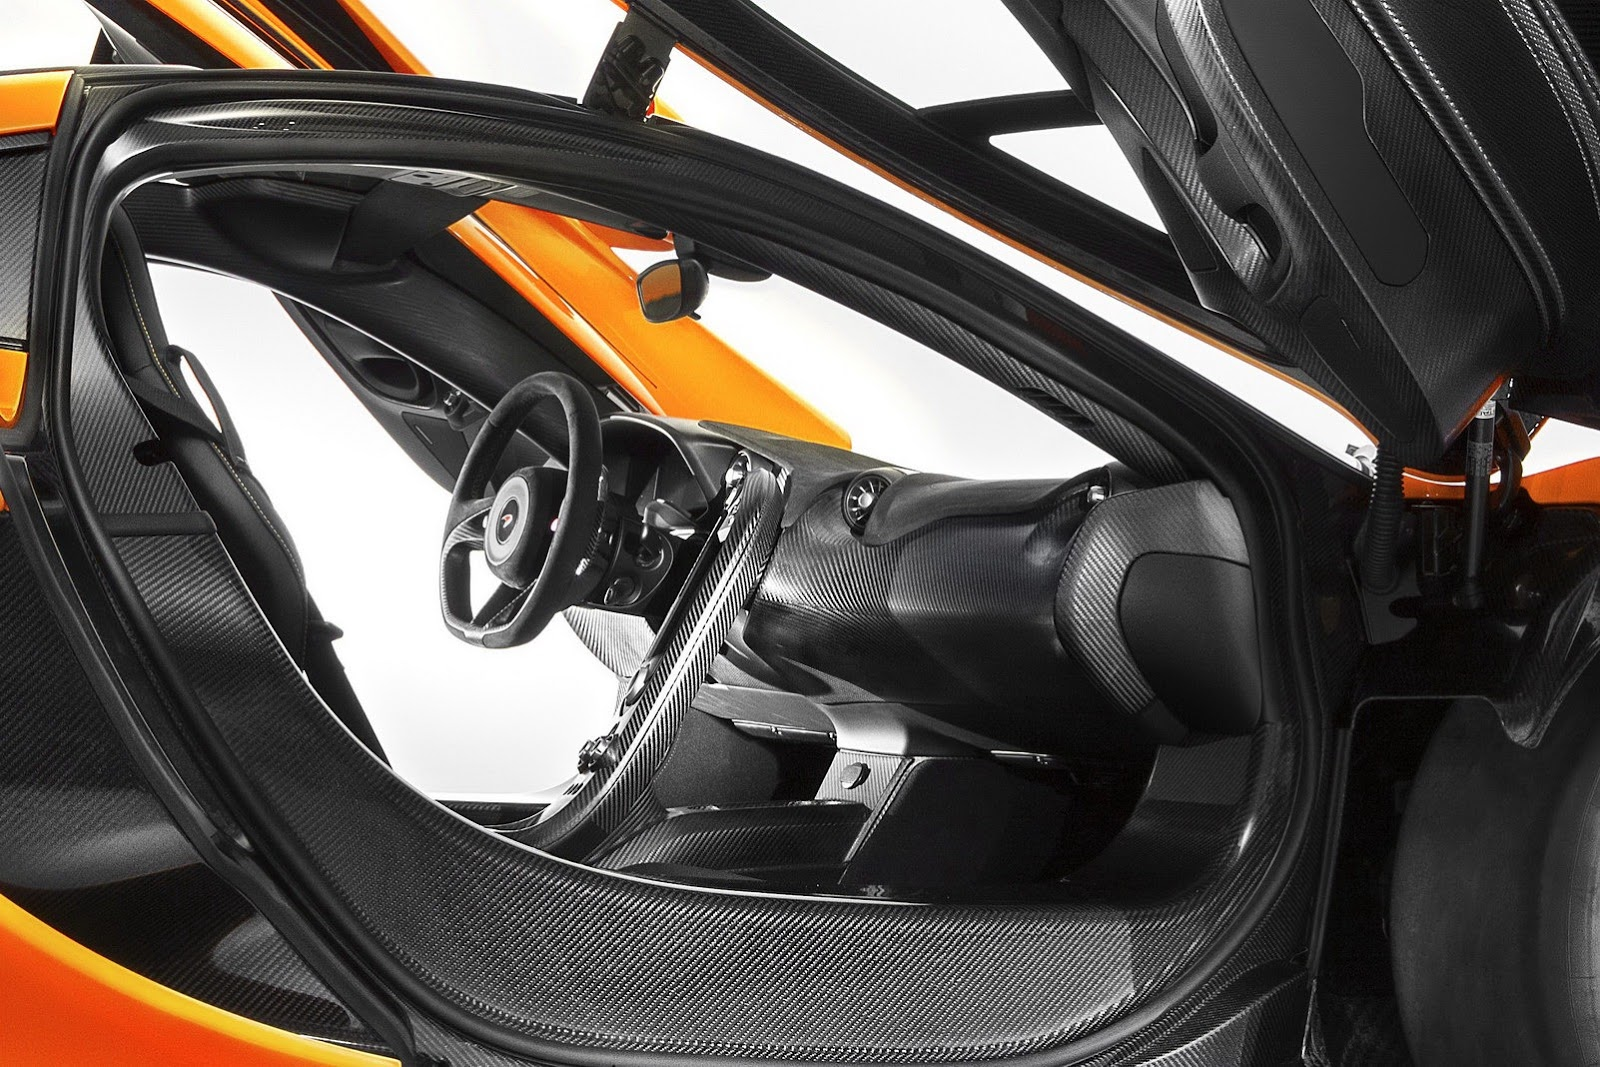 McLaren reveals the cabin of upcoming P1 supercar